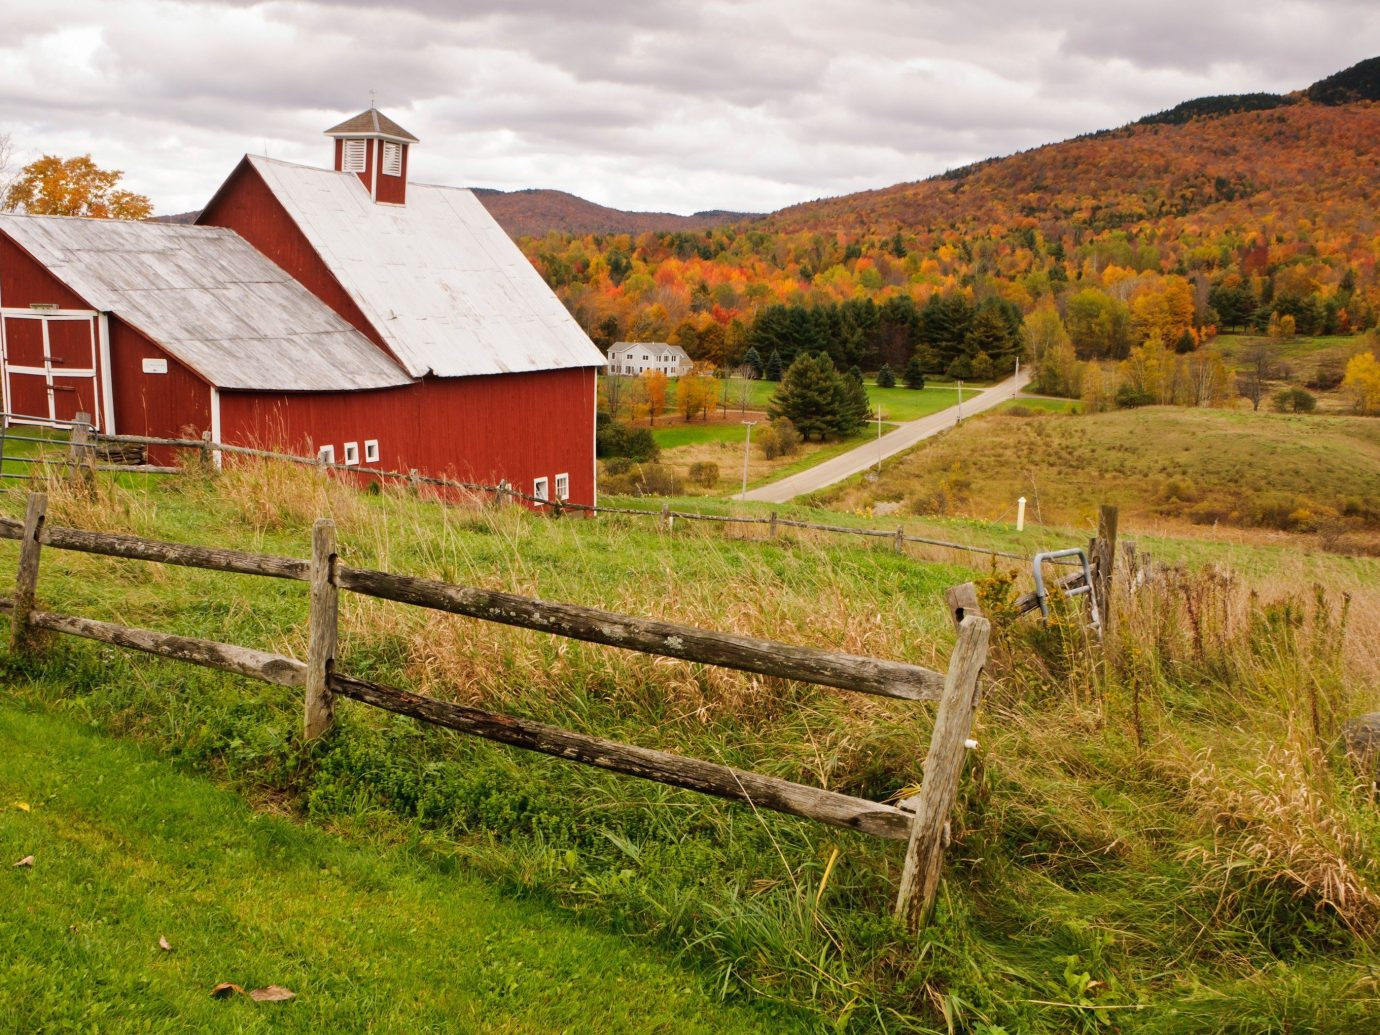 Trip Ideas grass outdoor highland sky building mountainous landforms mountain field pasture house Farm agriculture Fence hill rural area meadow Village grassy valley landscape green mountain range old barn autumn lush hillside